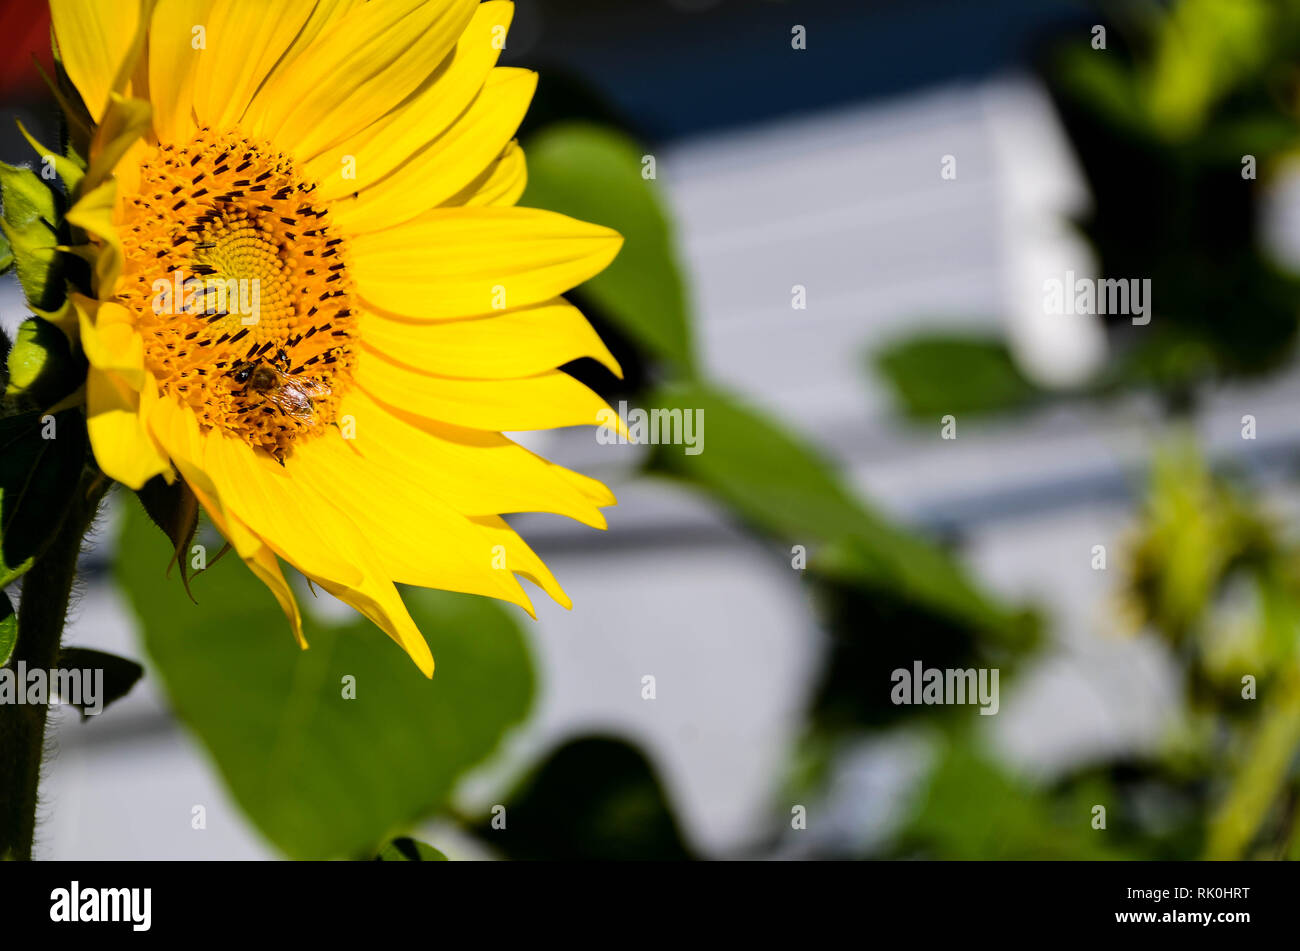 Side view of sunflower with blurred background - Stock Image